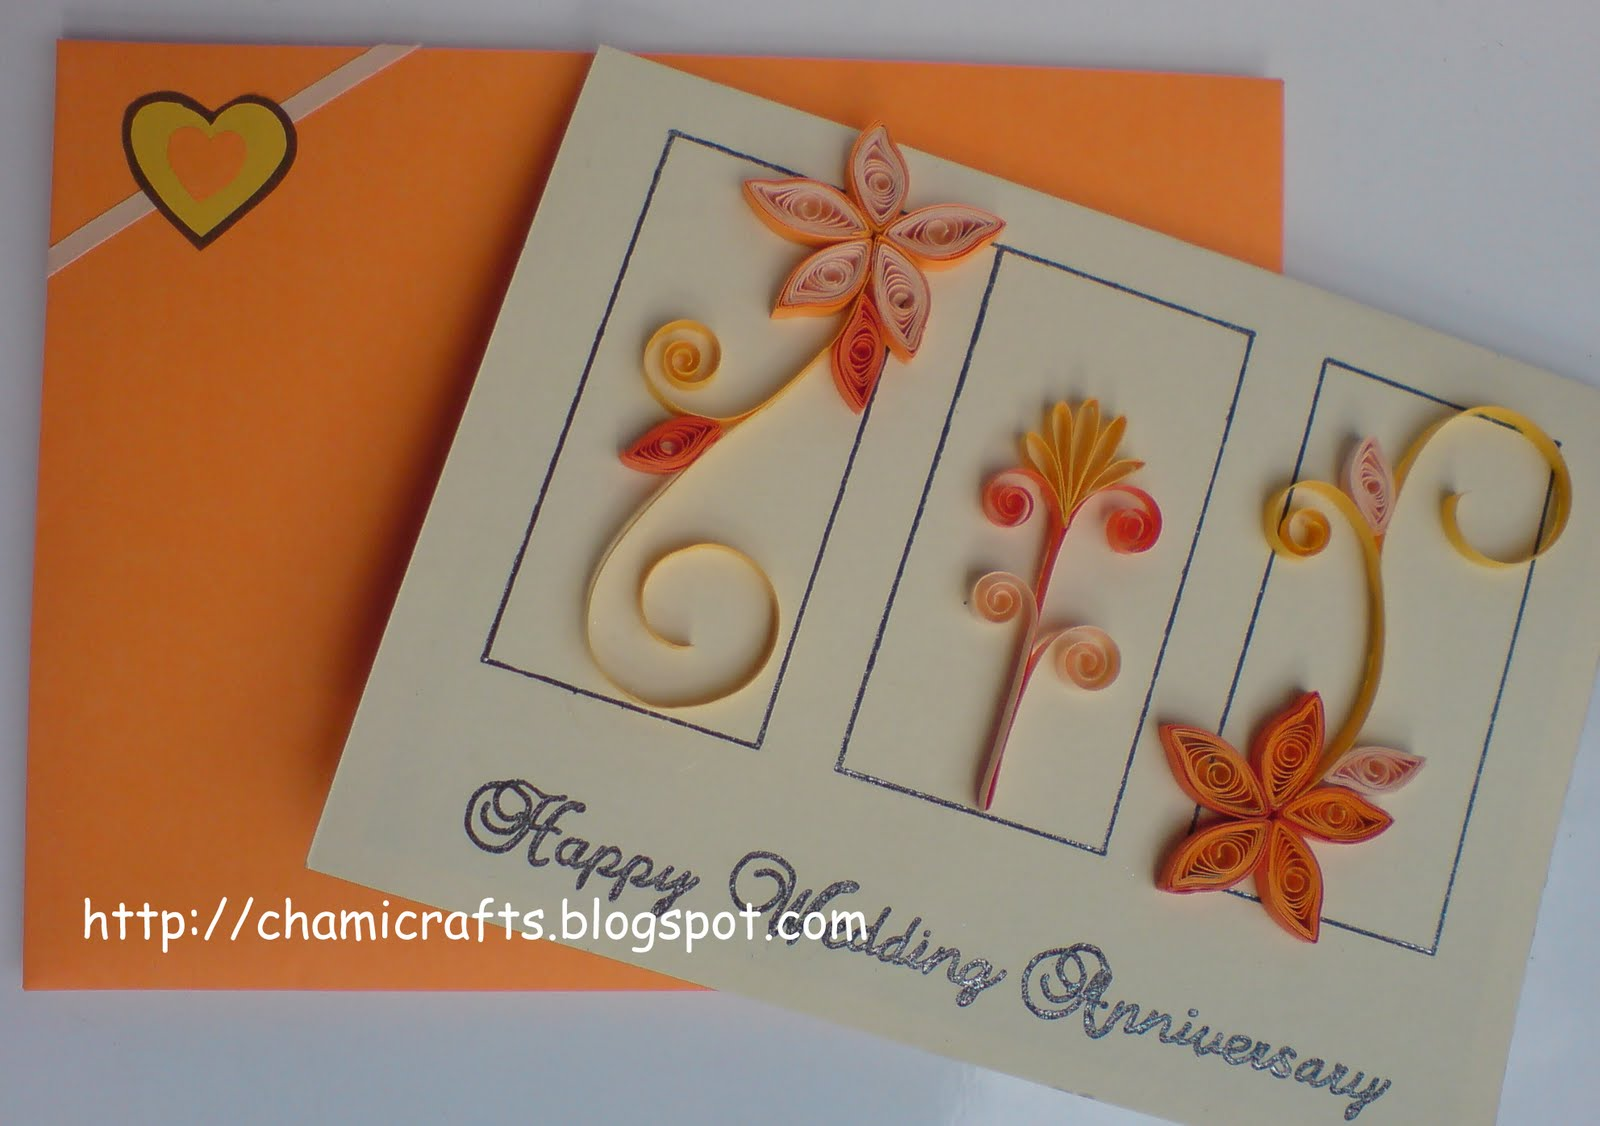 Chami Crafts - Handmade Greeting Cards: Wedding ...